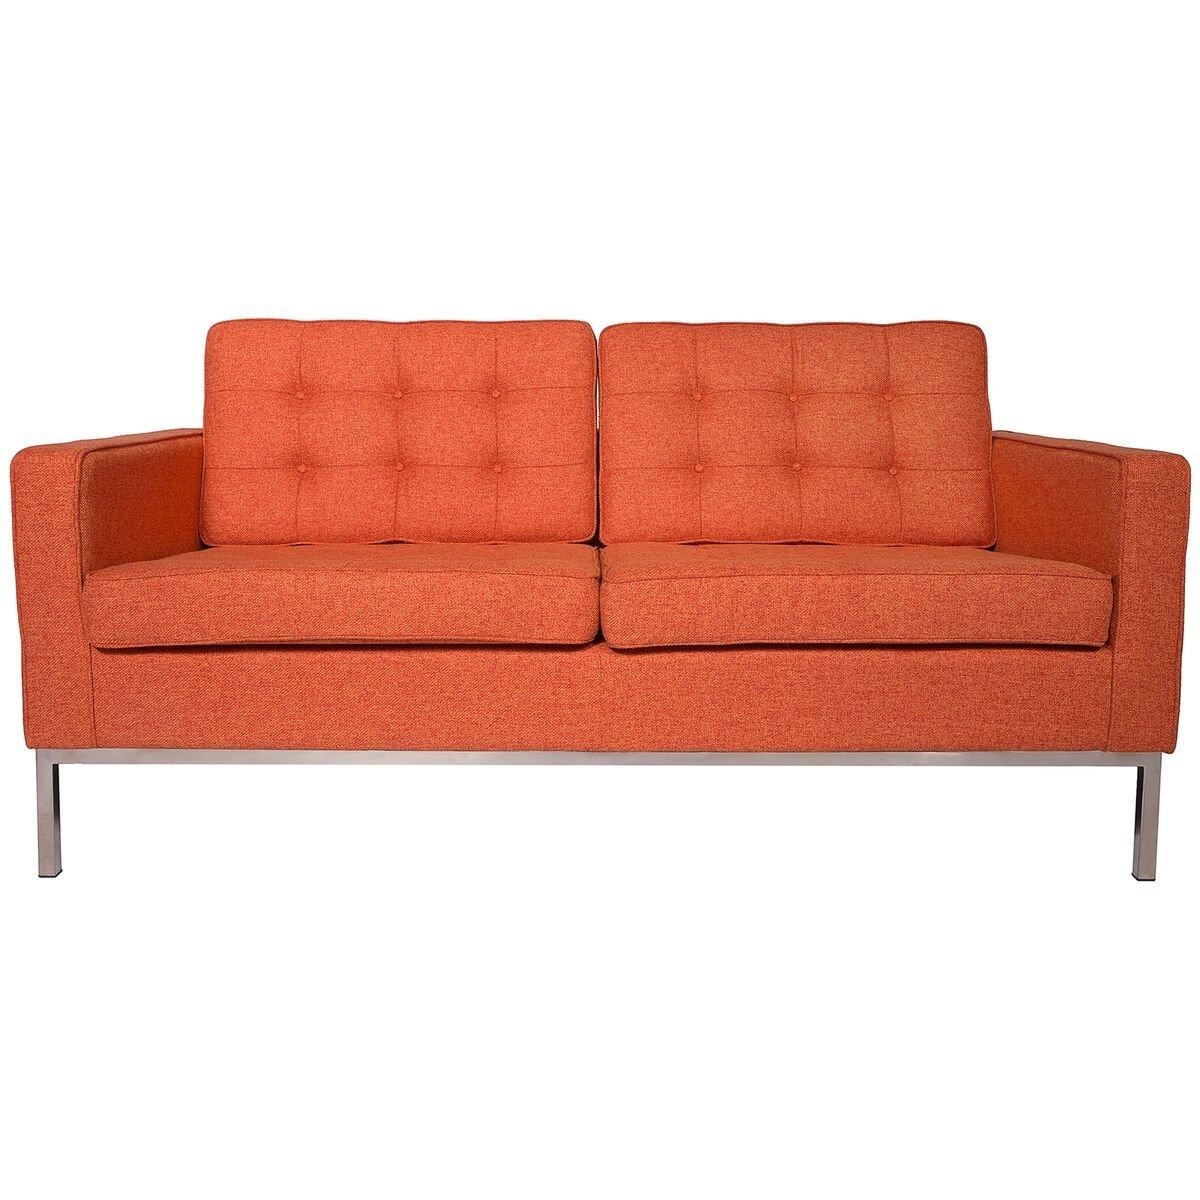 Featured Image of Florence Leather Sofas